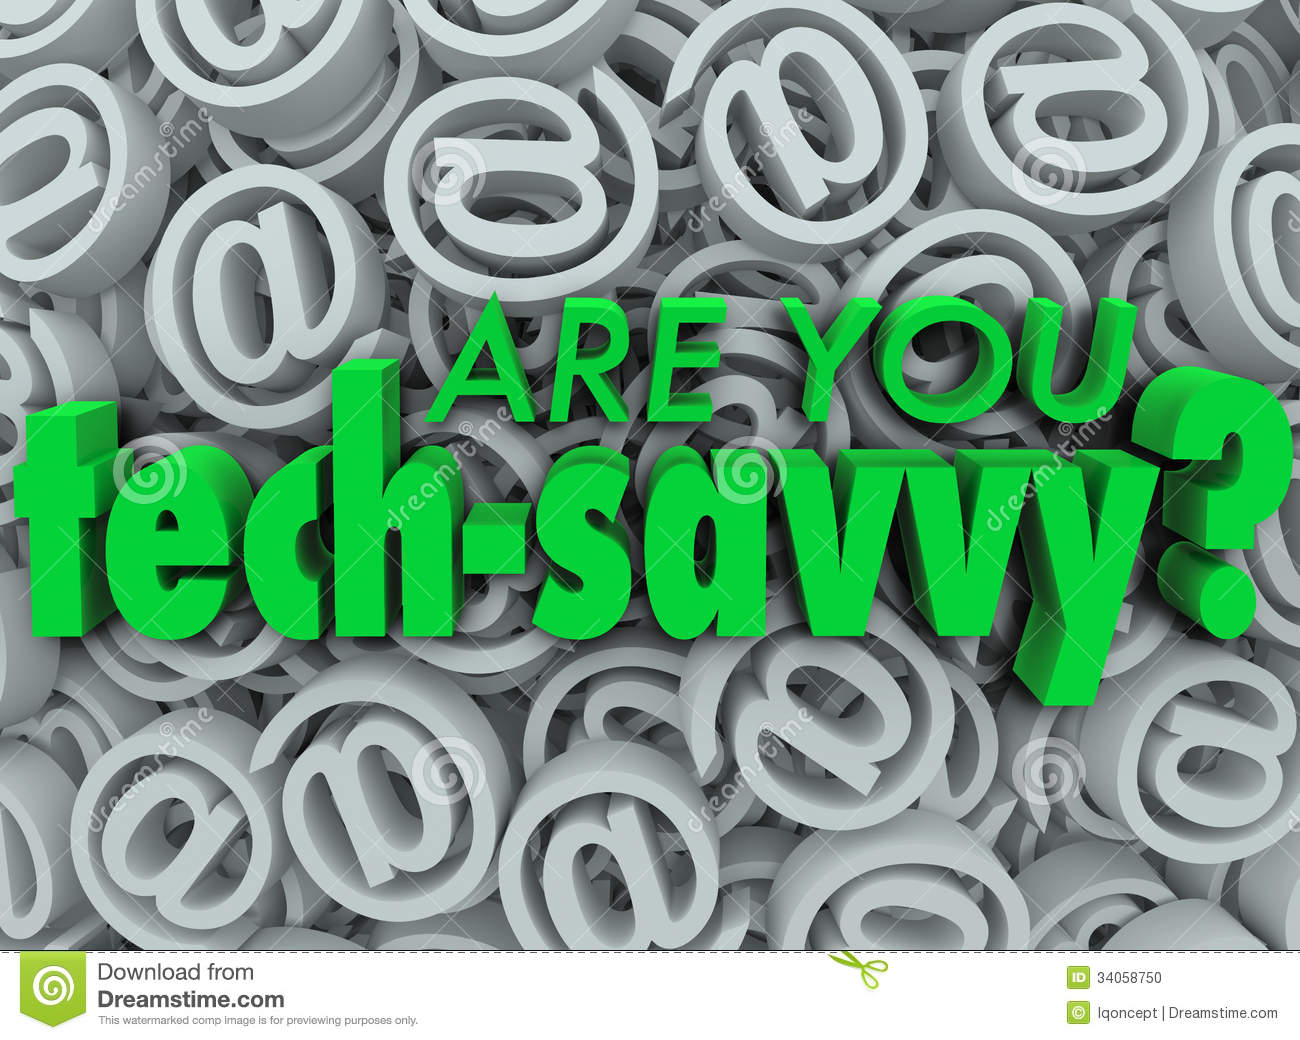 Are You Tech Savvy Email Symbol SIgn Background Stock